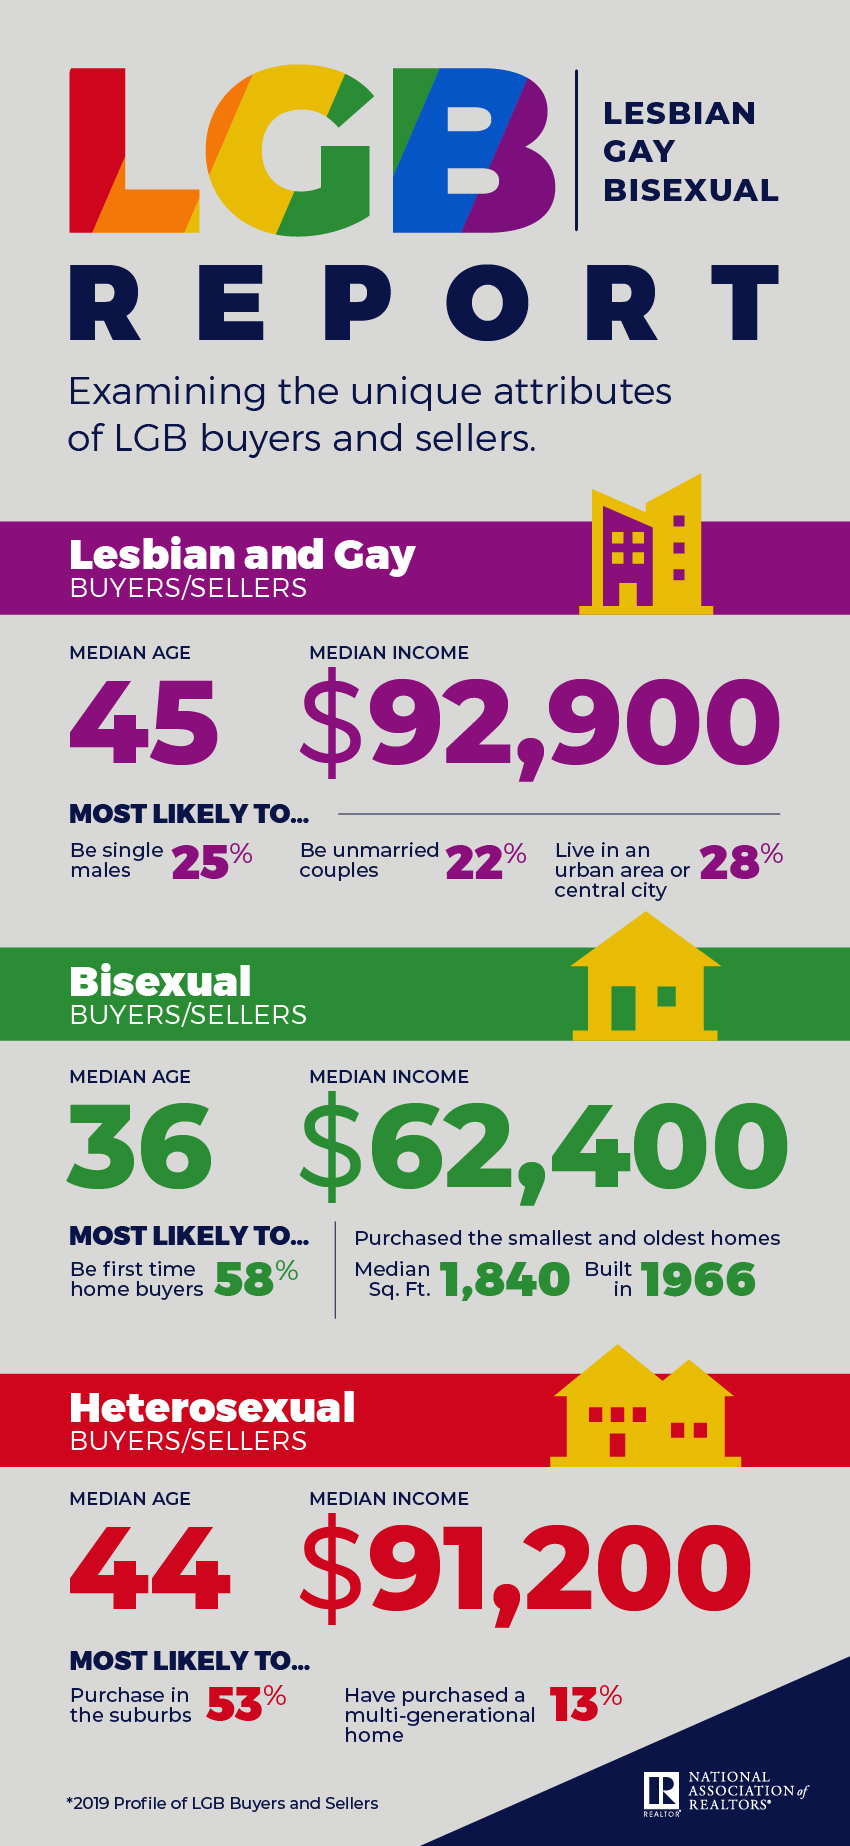 lgb-report-infographic-06-06-2019-850w-1846h.png